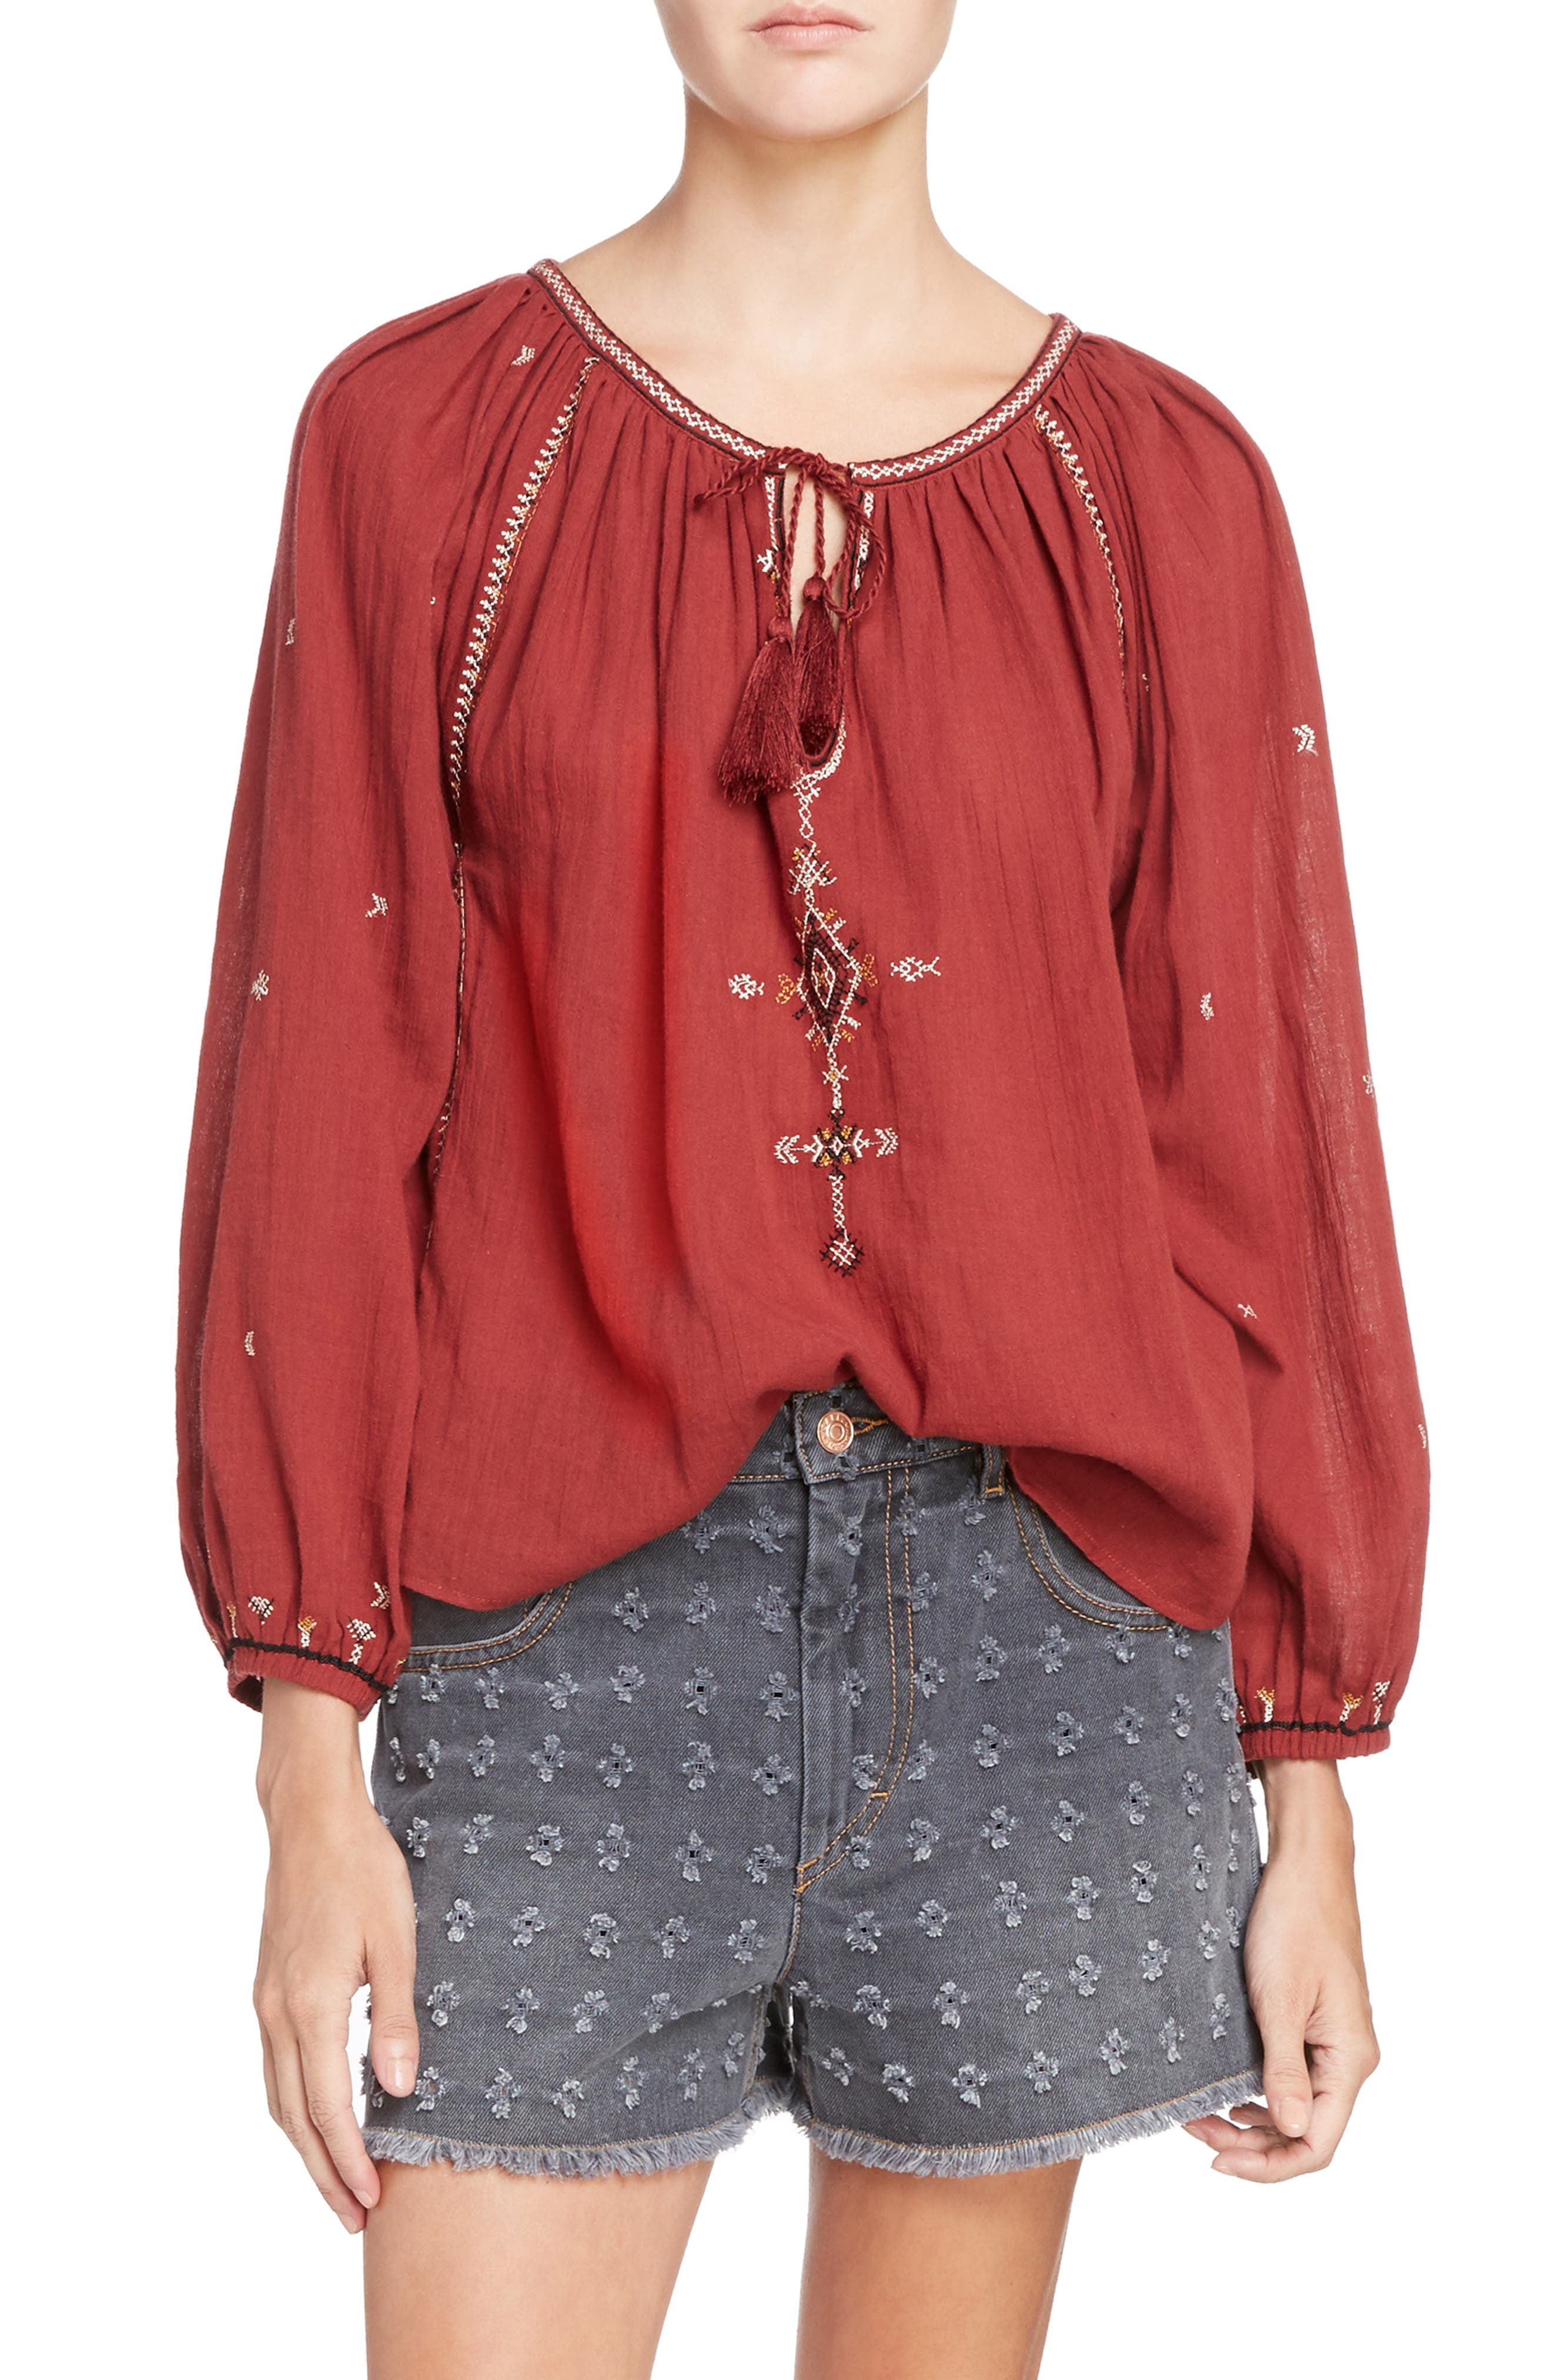 Isabel Marant Étoile Melina Embroidered Cotton Top,                             Main thumbnail 1, color,                             600